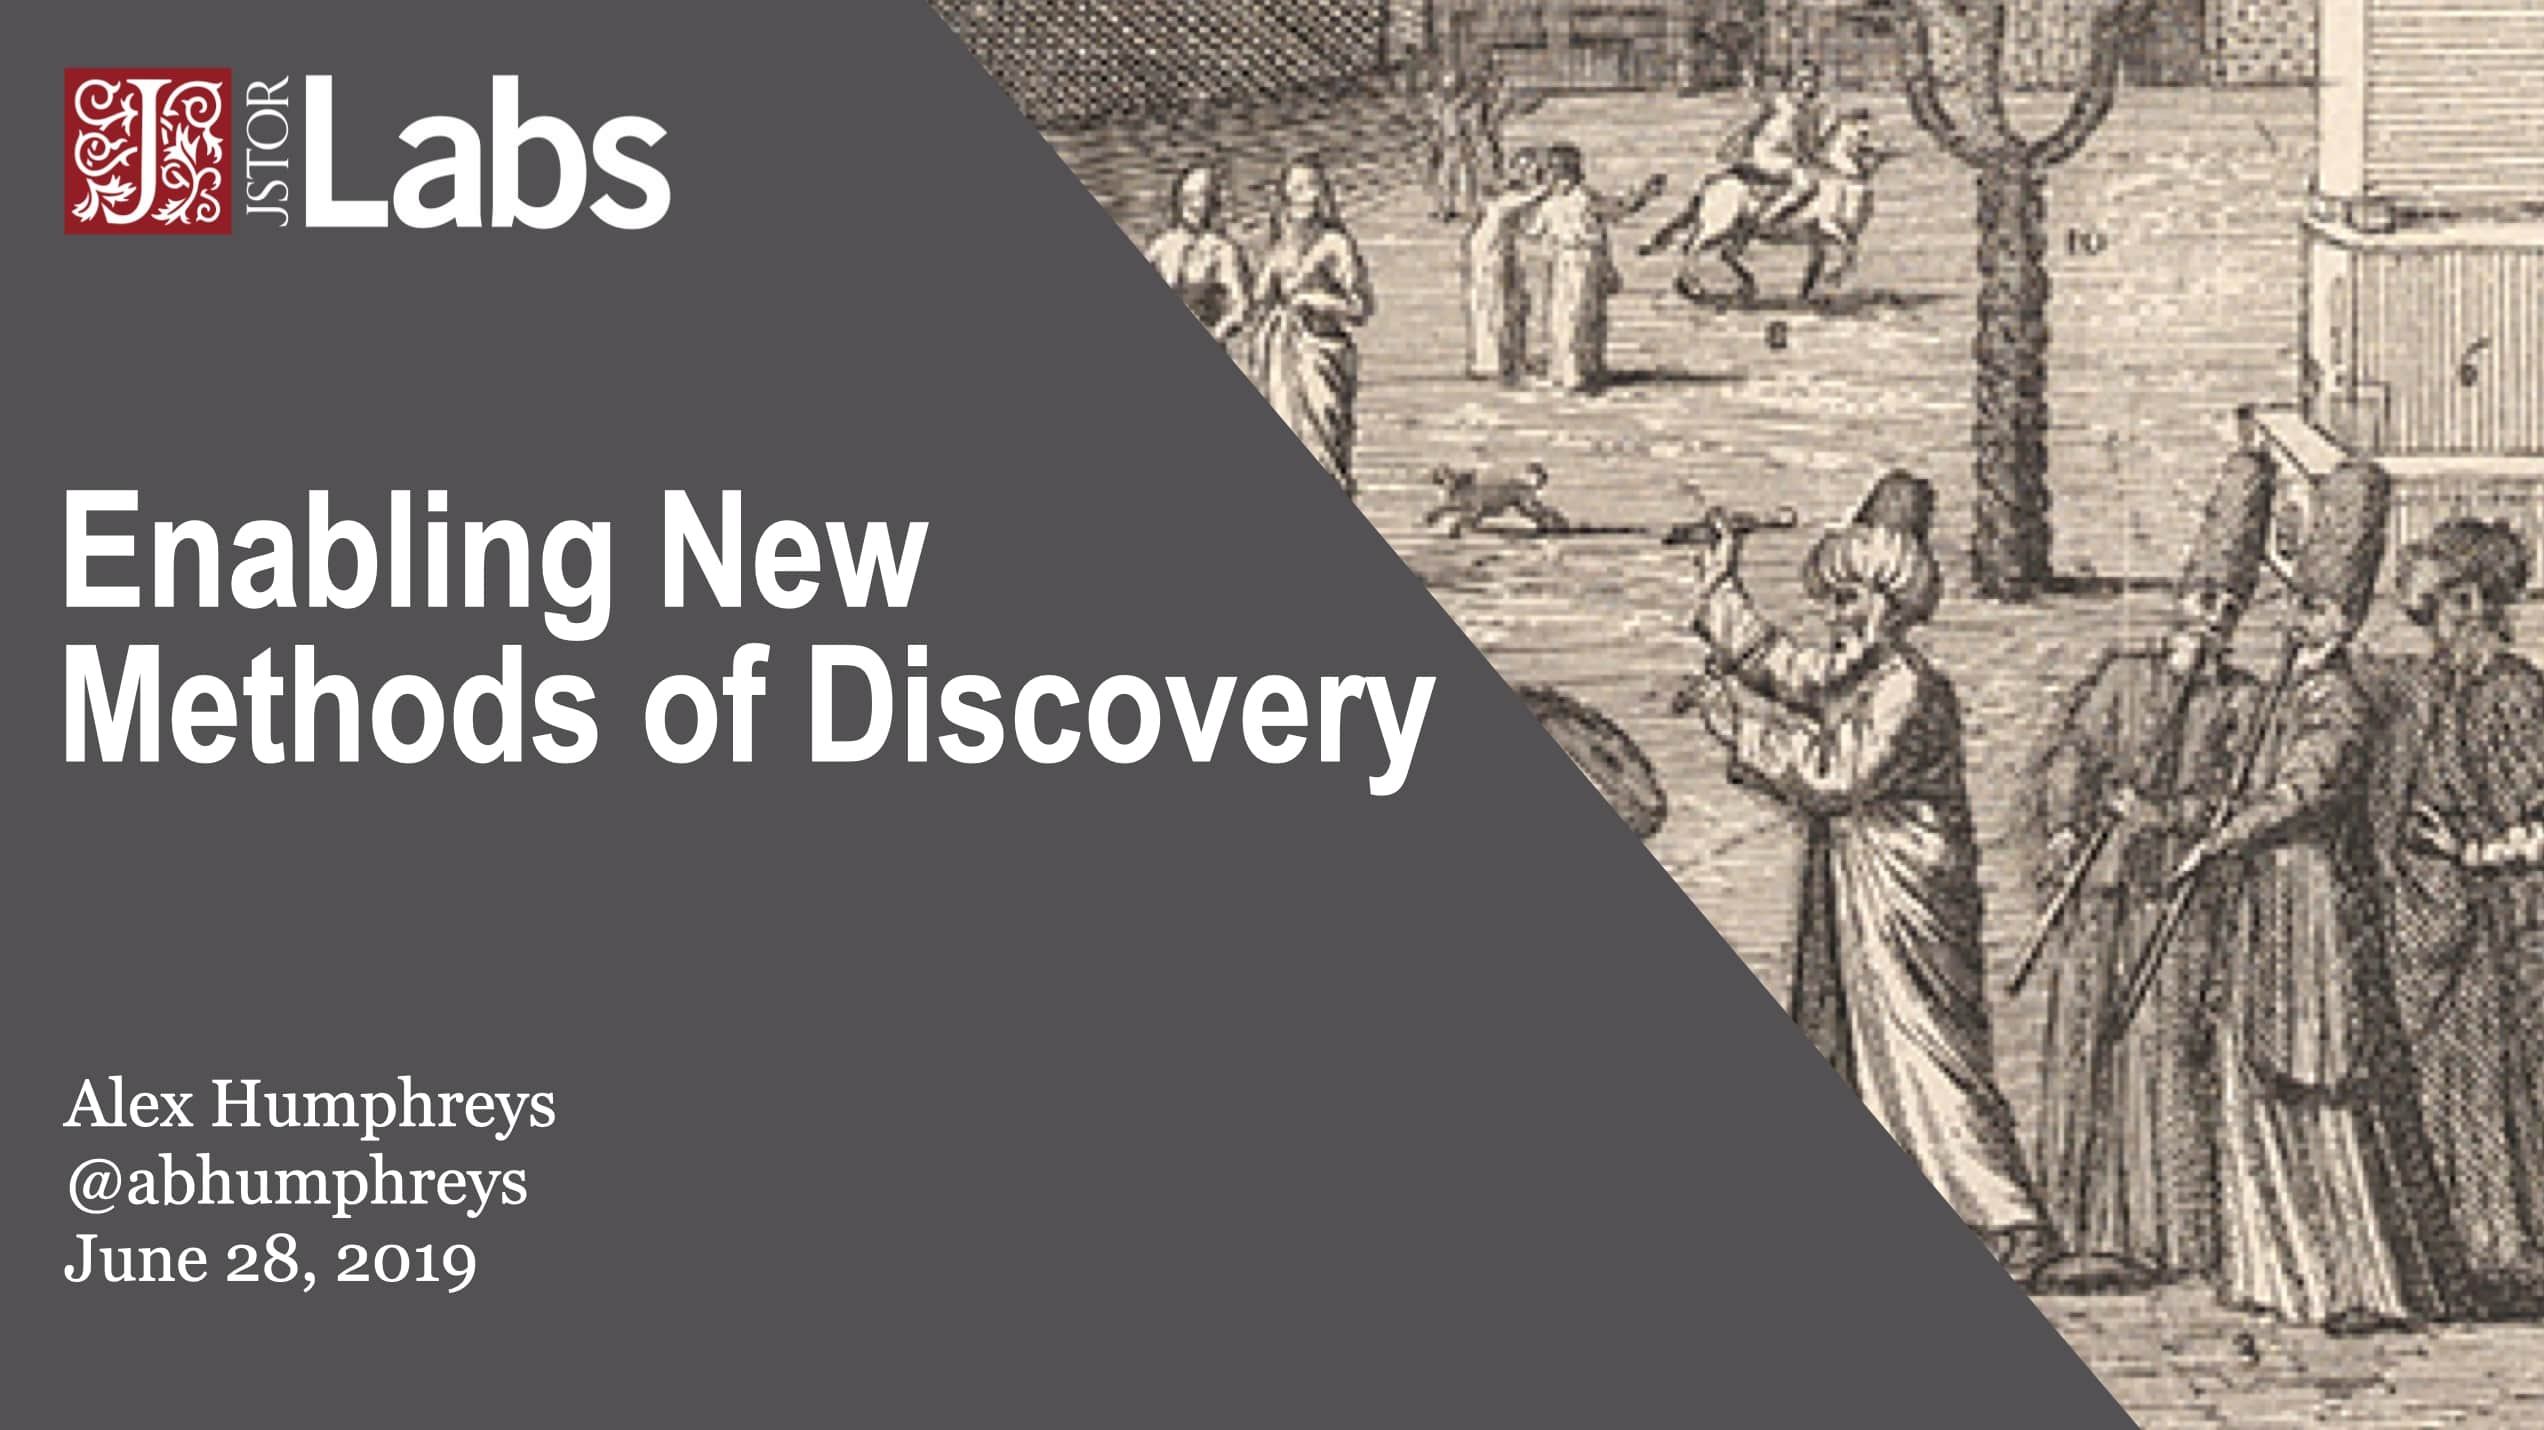 Enabling New Methods of Discovery